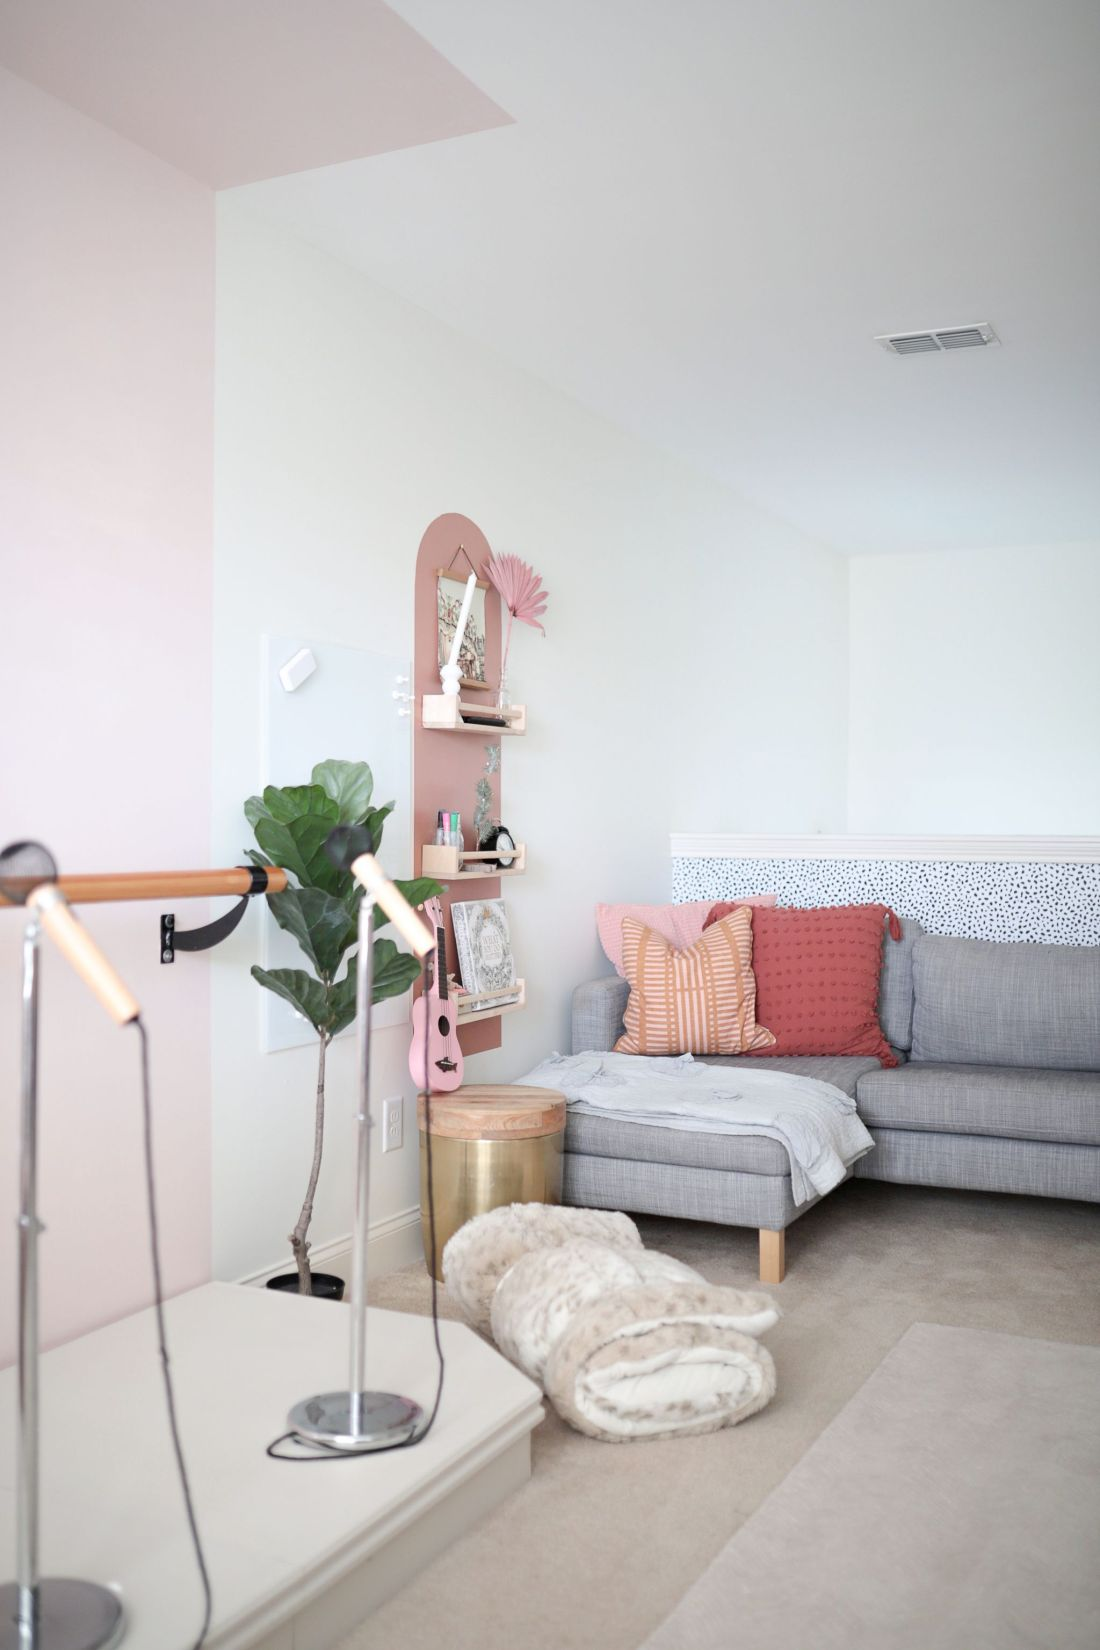 Geometric Shapes Design by popular Nashville life and style blog, Modern Day Moguls: image of a playroom with pink geometric shapes painted on white walls, ballet bar, pink chairs, exercise trampoline, pink ombre tassel light fixture, and a grey sectional couch.